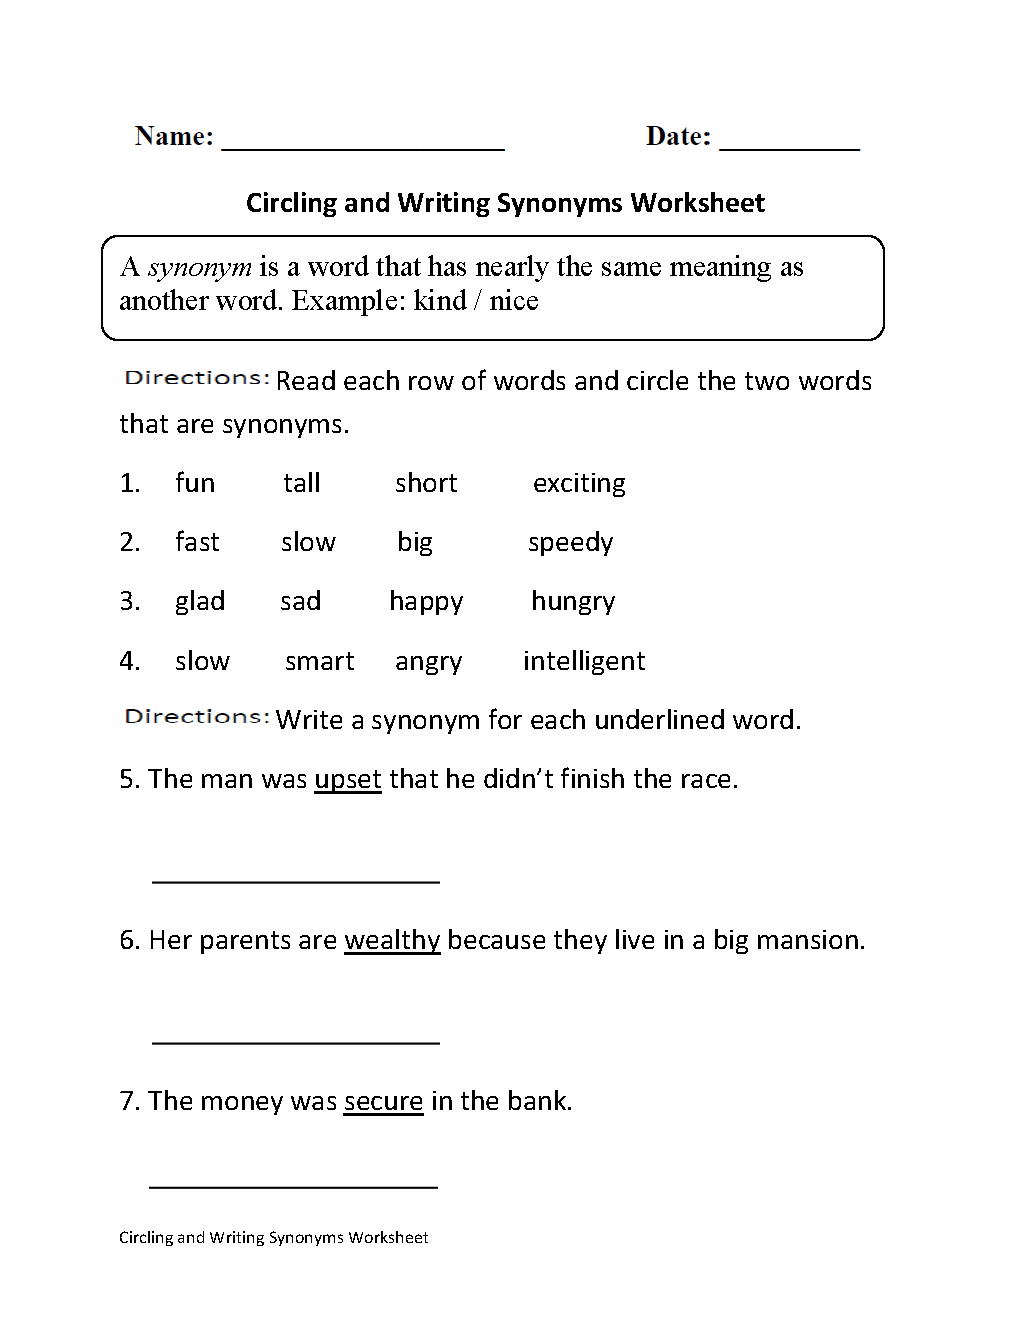 Worksheets Synonym Worksheets englishlinx com synonyms worksheets